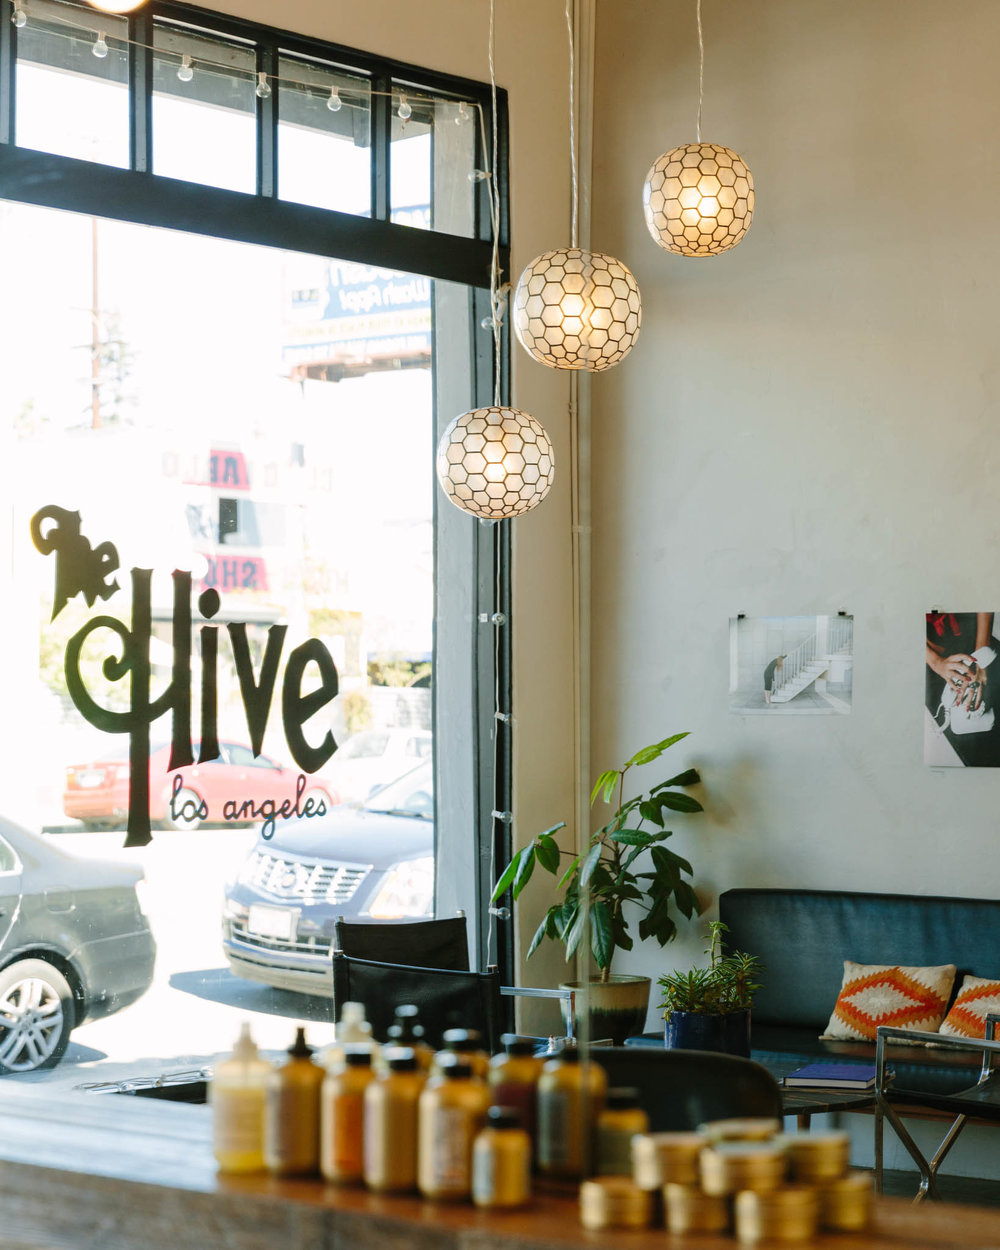 Shop Small: The Hive